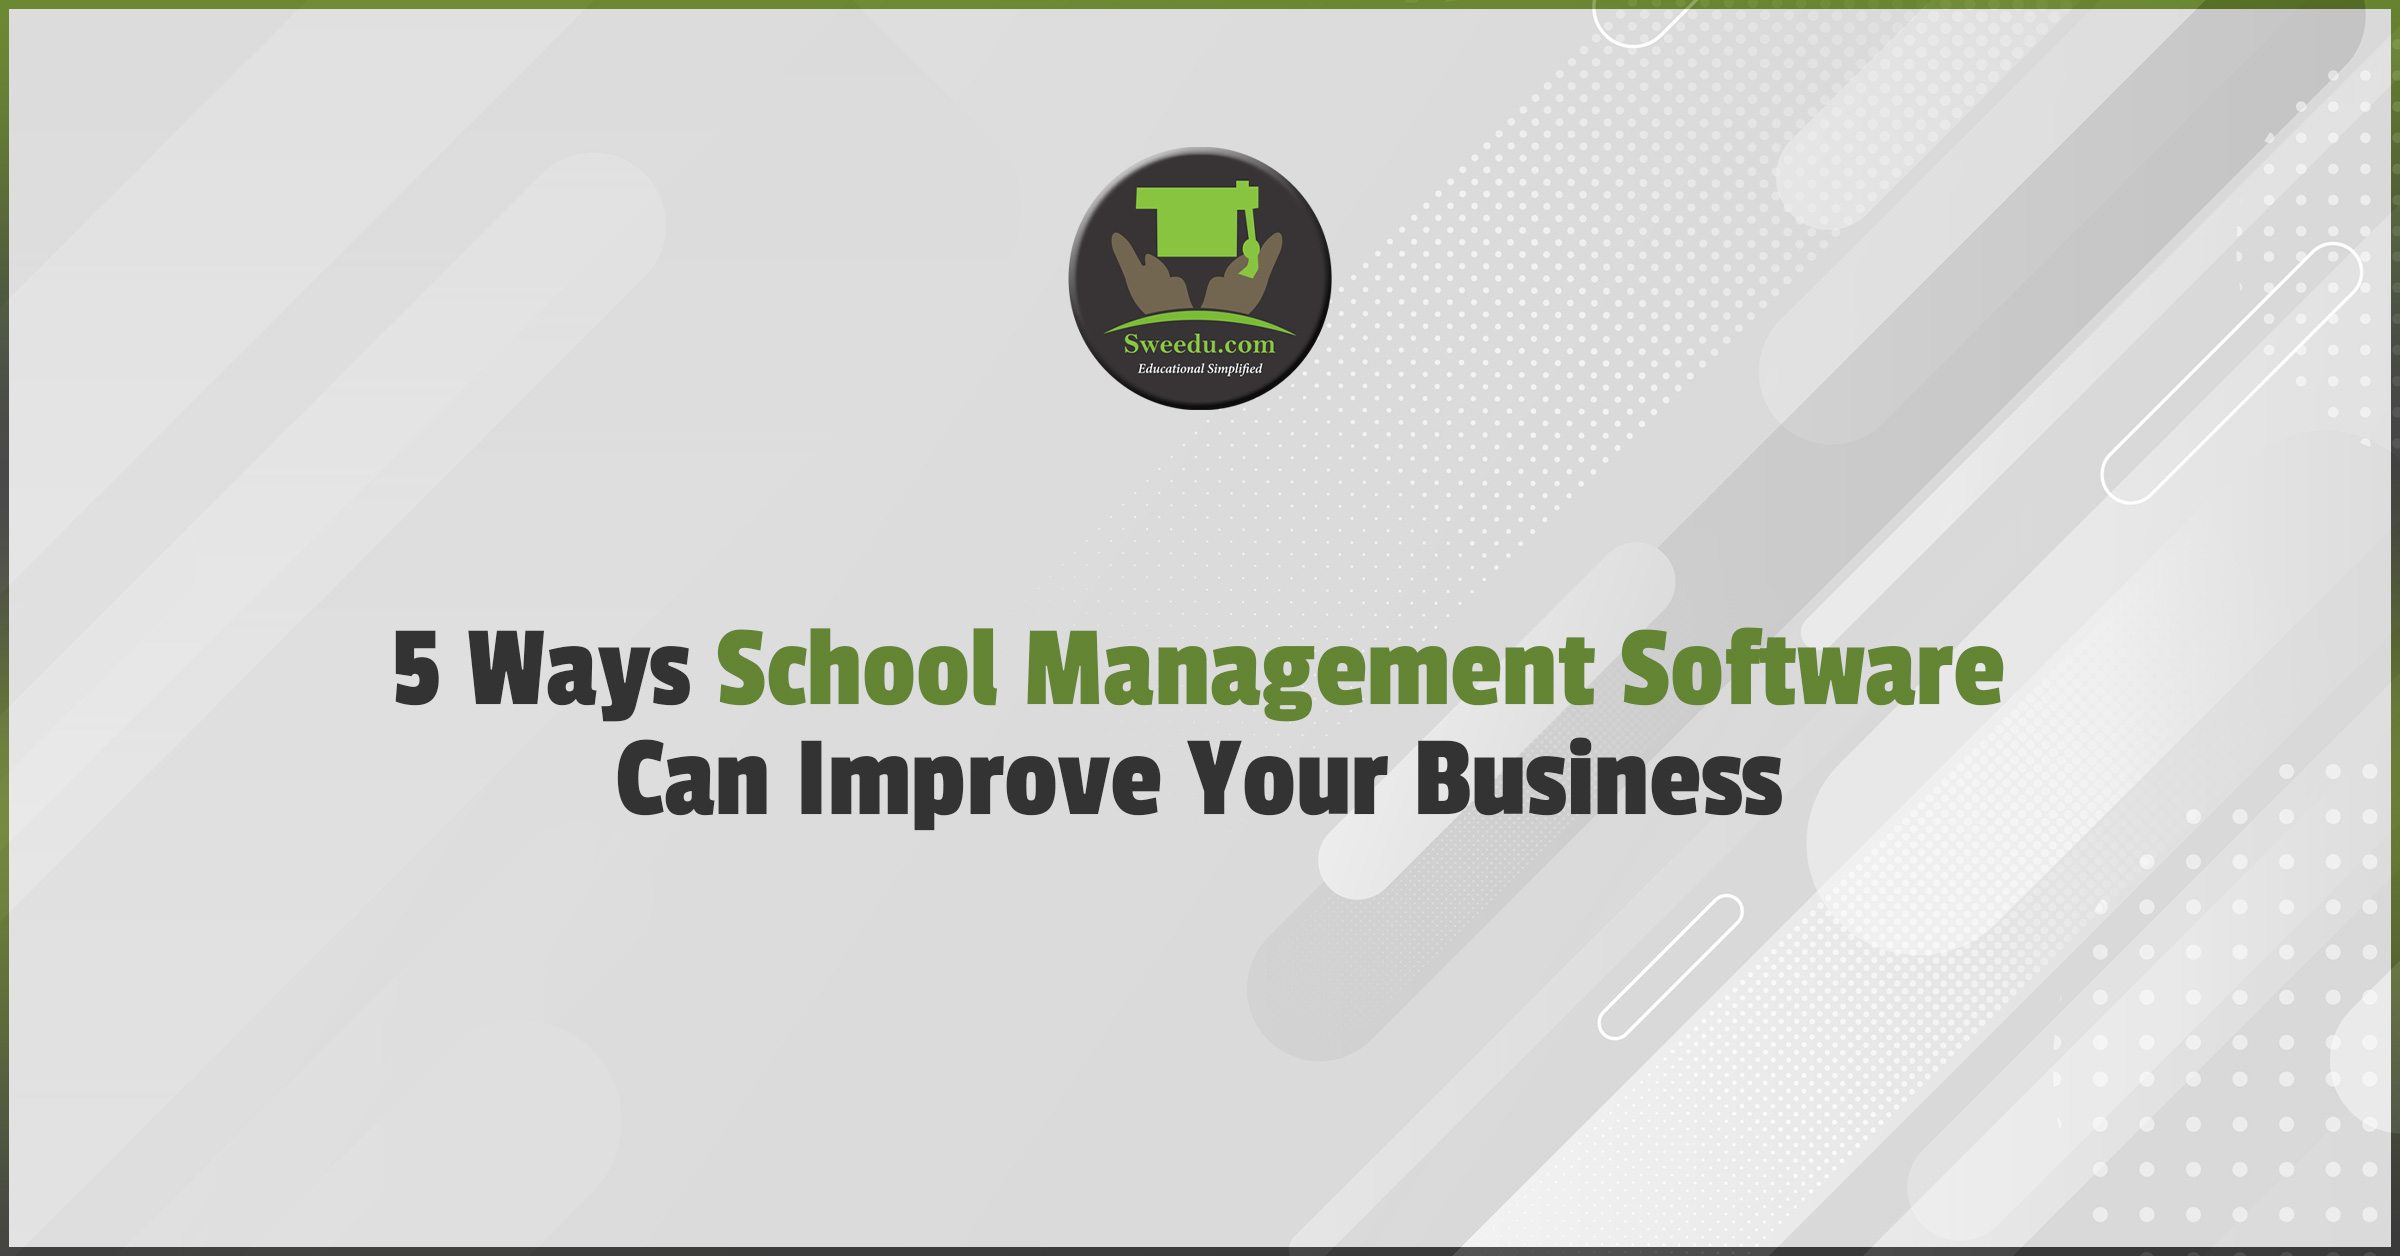 Top 5 Ways School Management Software Can Improve Your Business